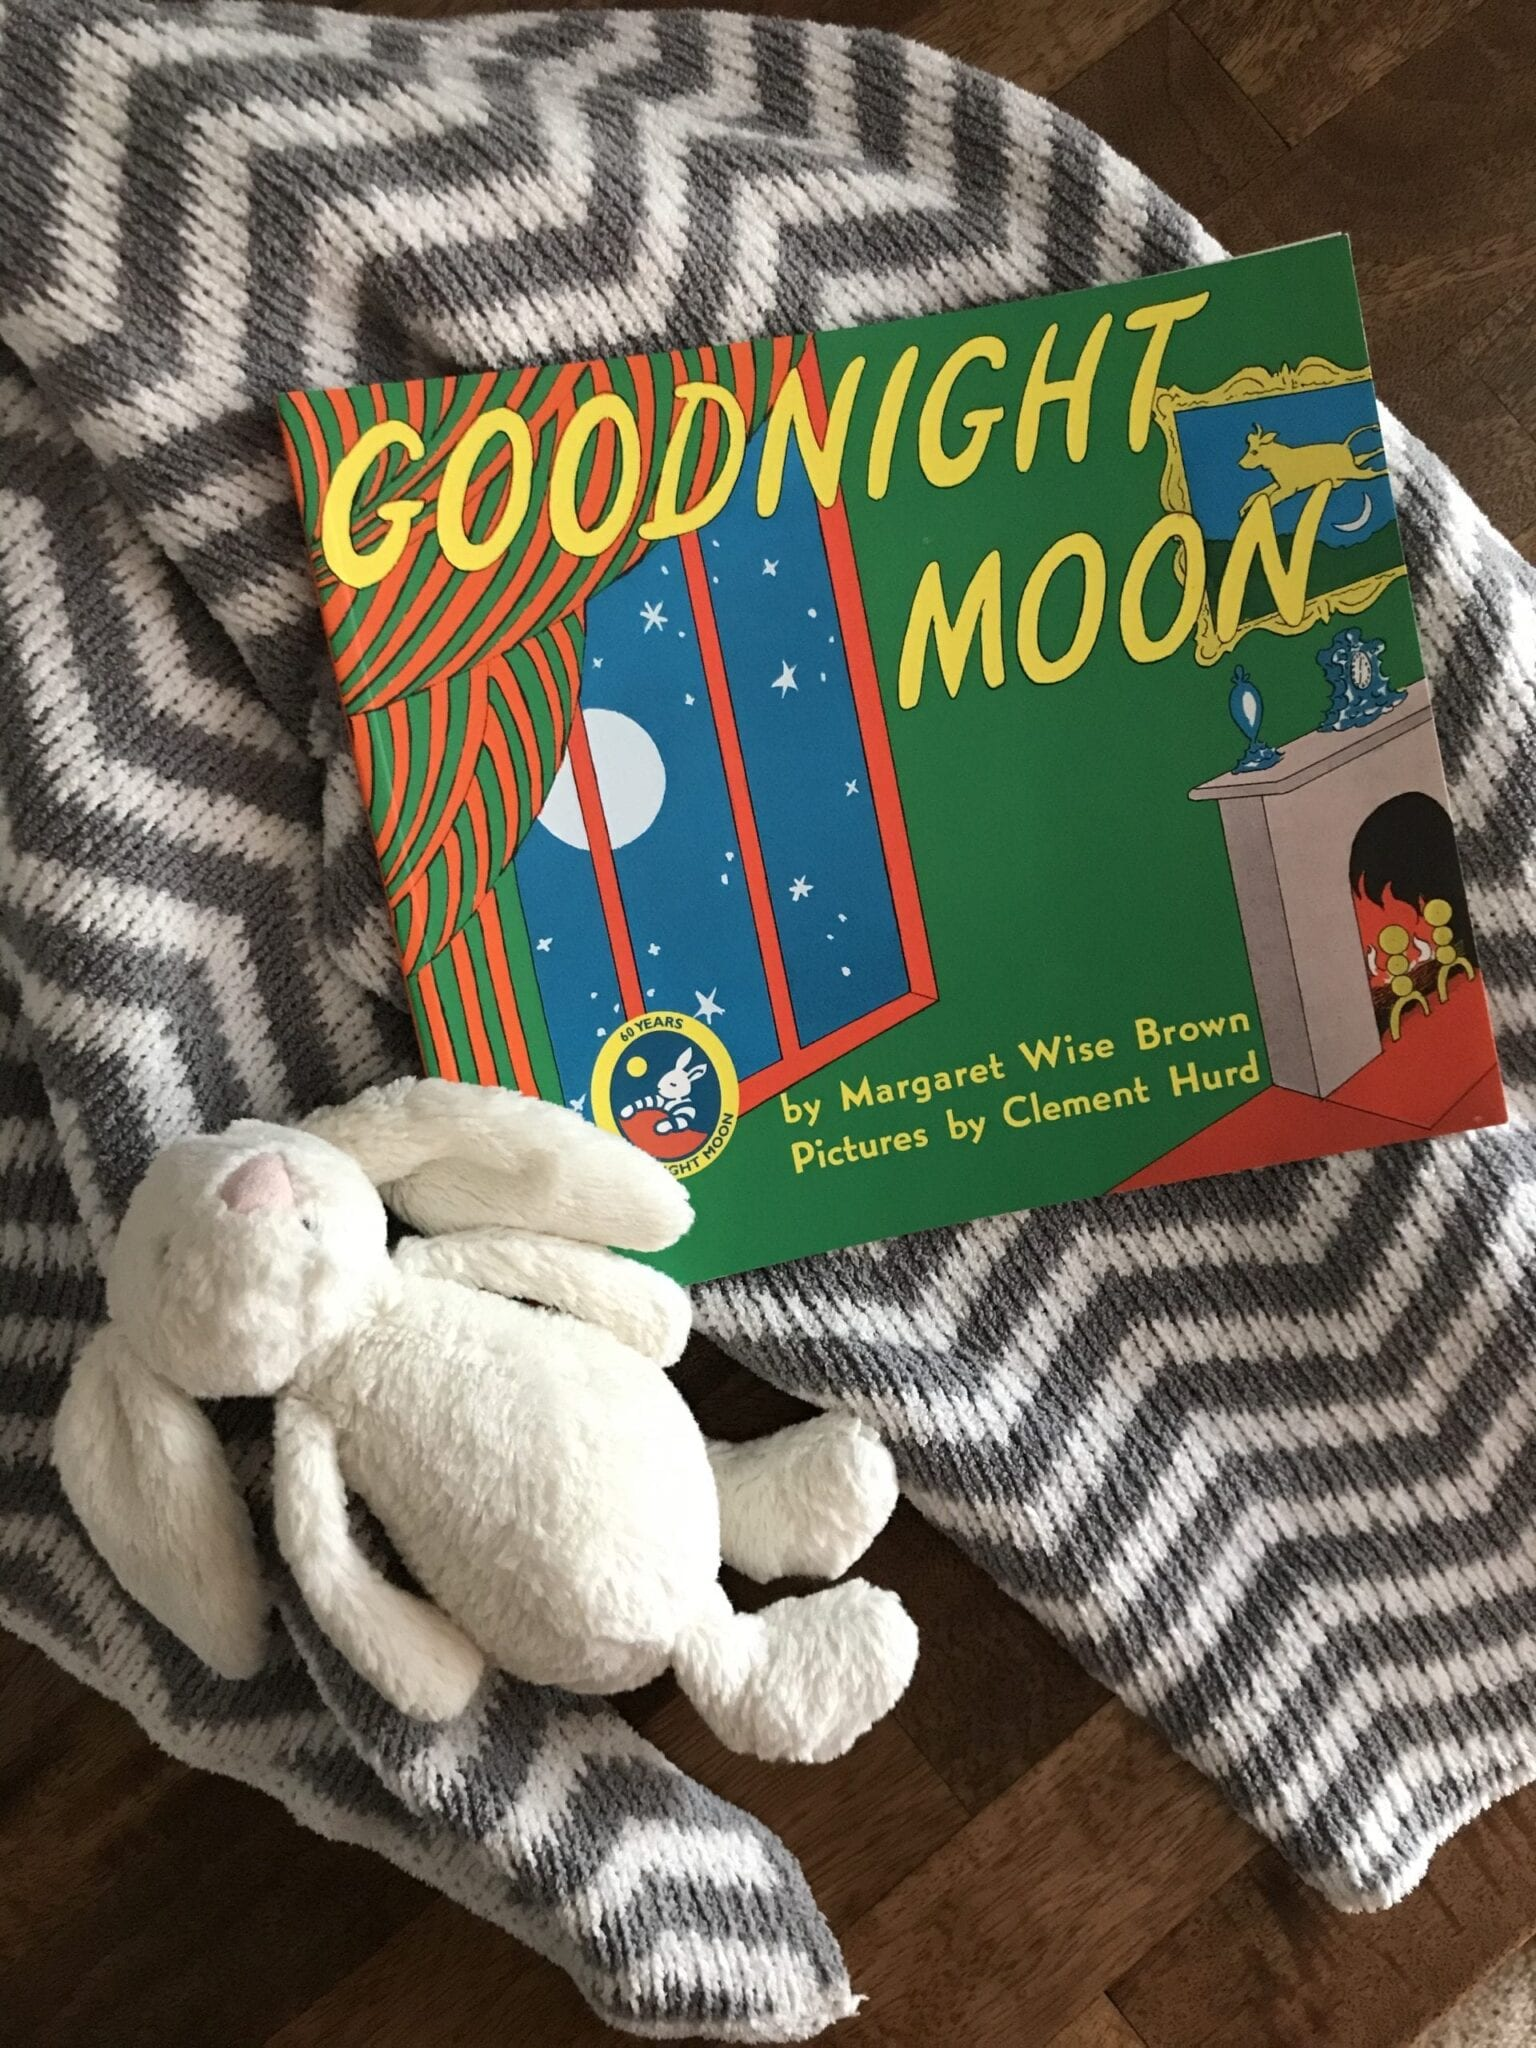 Free download of Goodnight Moon in the article homeschooling with a toddler